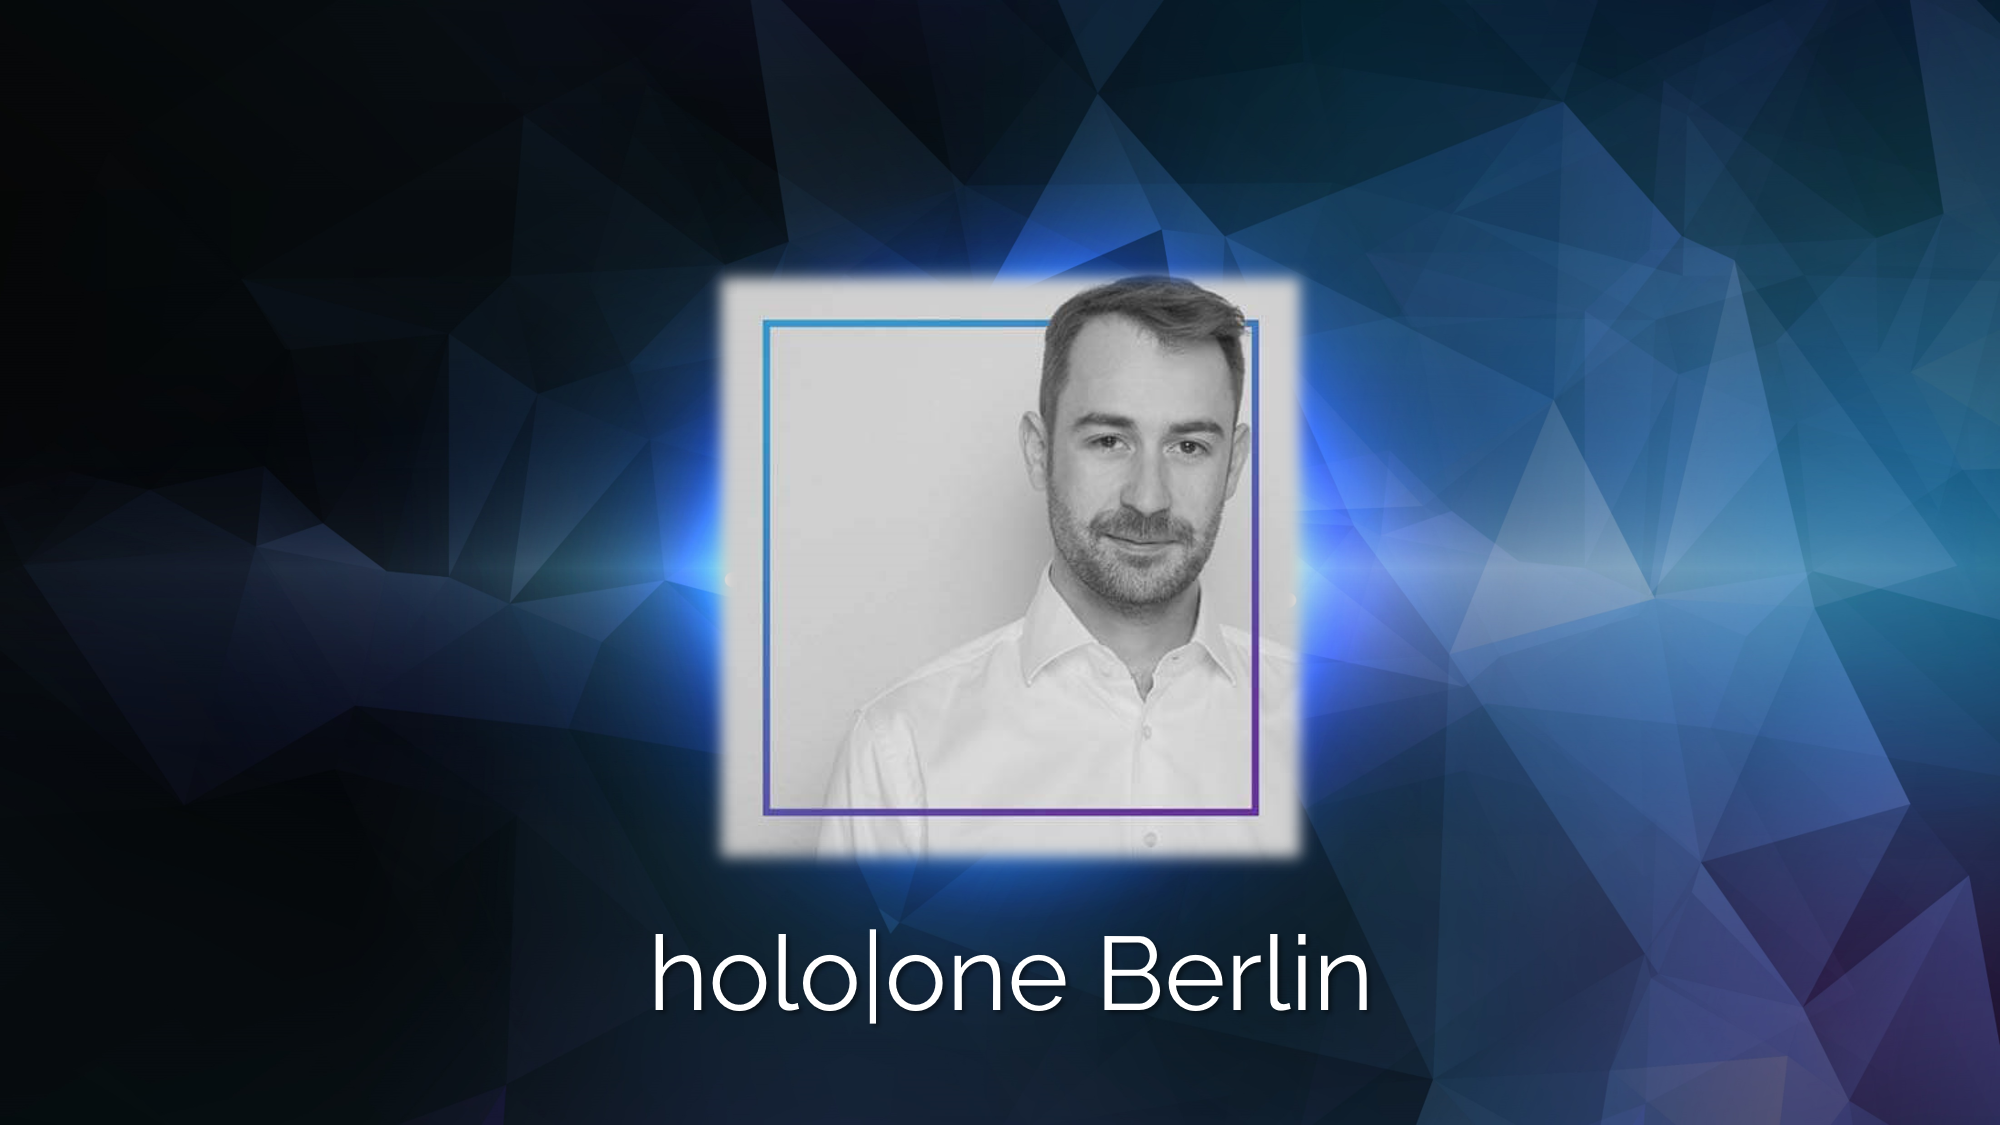 holo|one expands to Berlin!